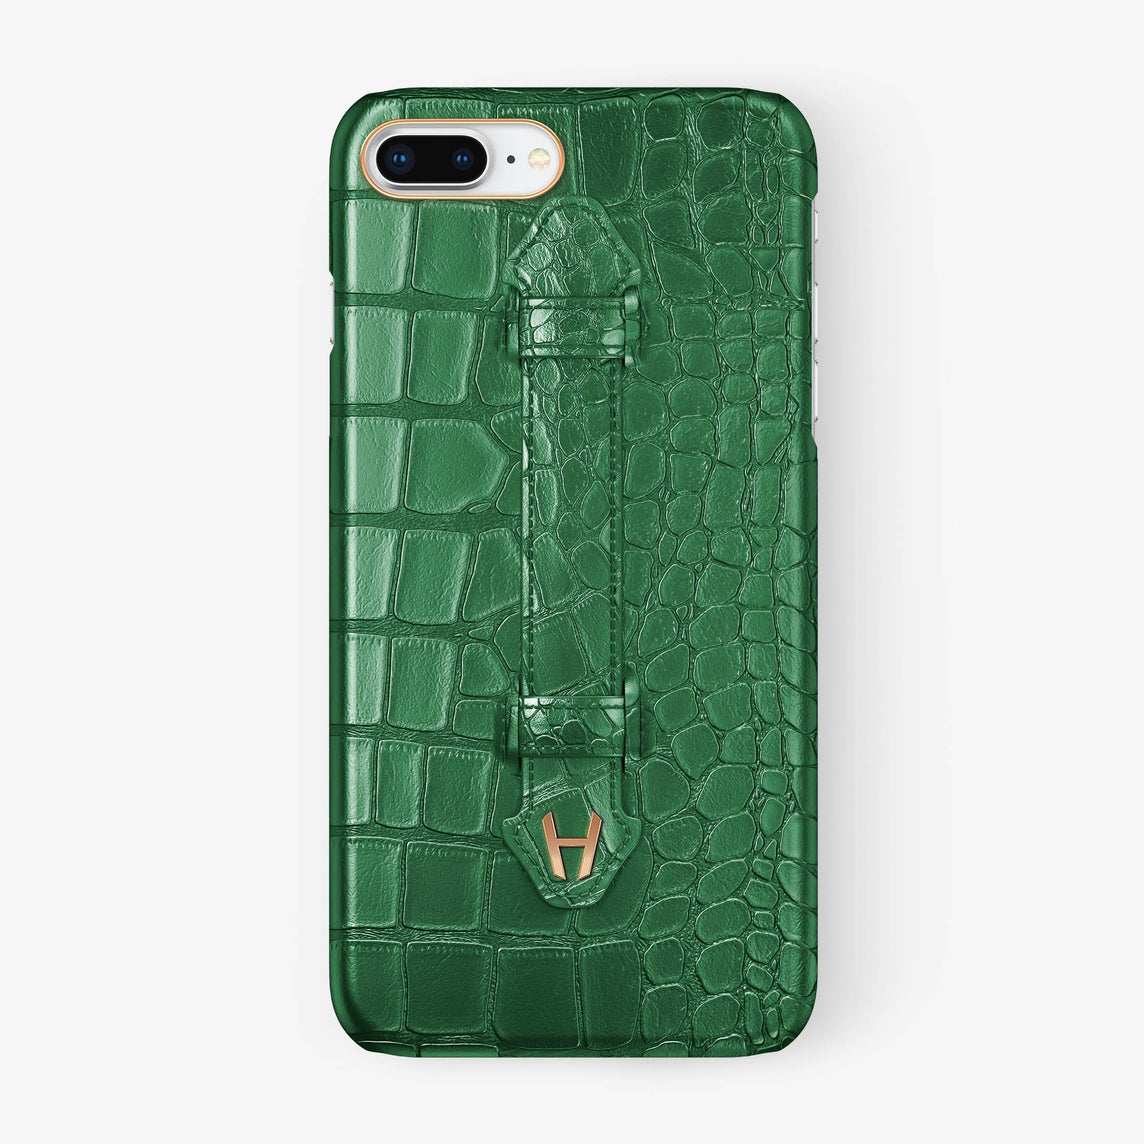 Green Alligator iPhone Finger Case for iPhone 7/8 Plus finishing rose gold - Hadoro Luxury Cases